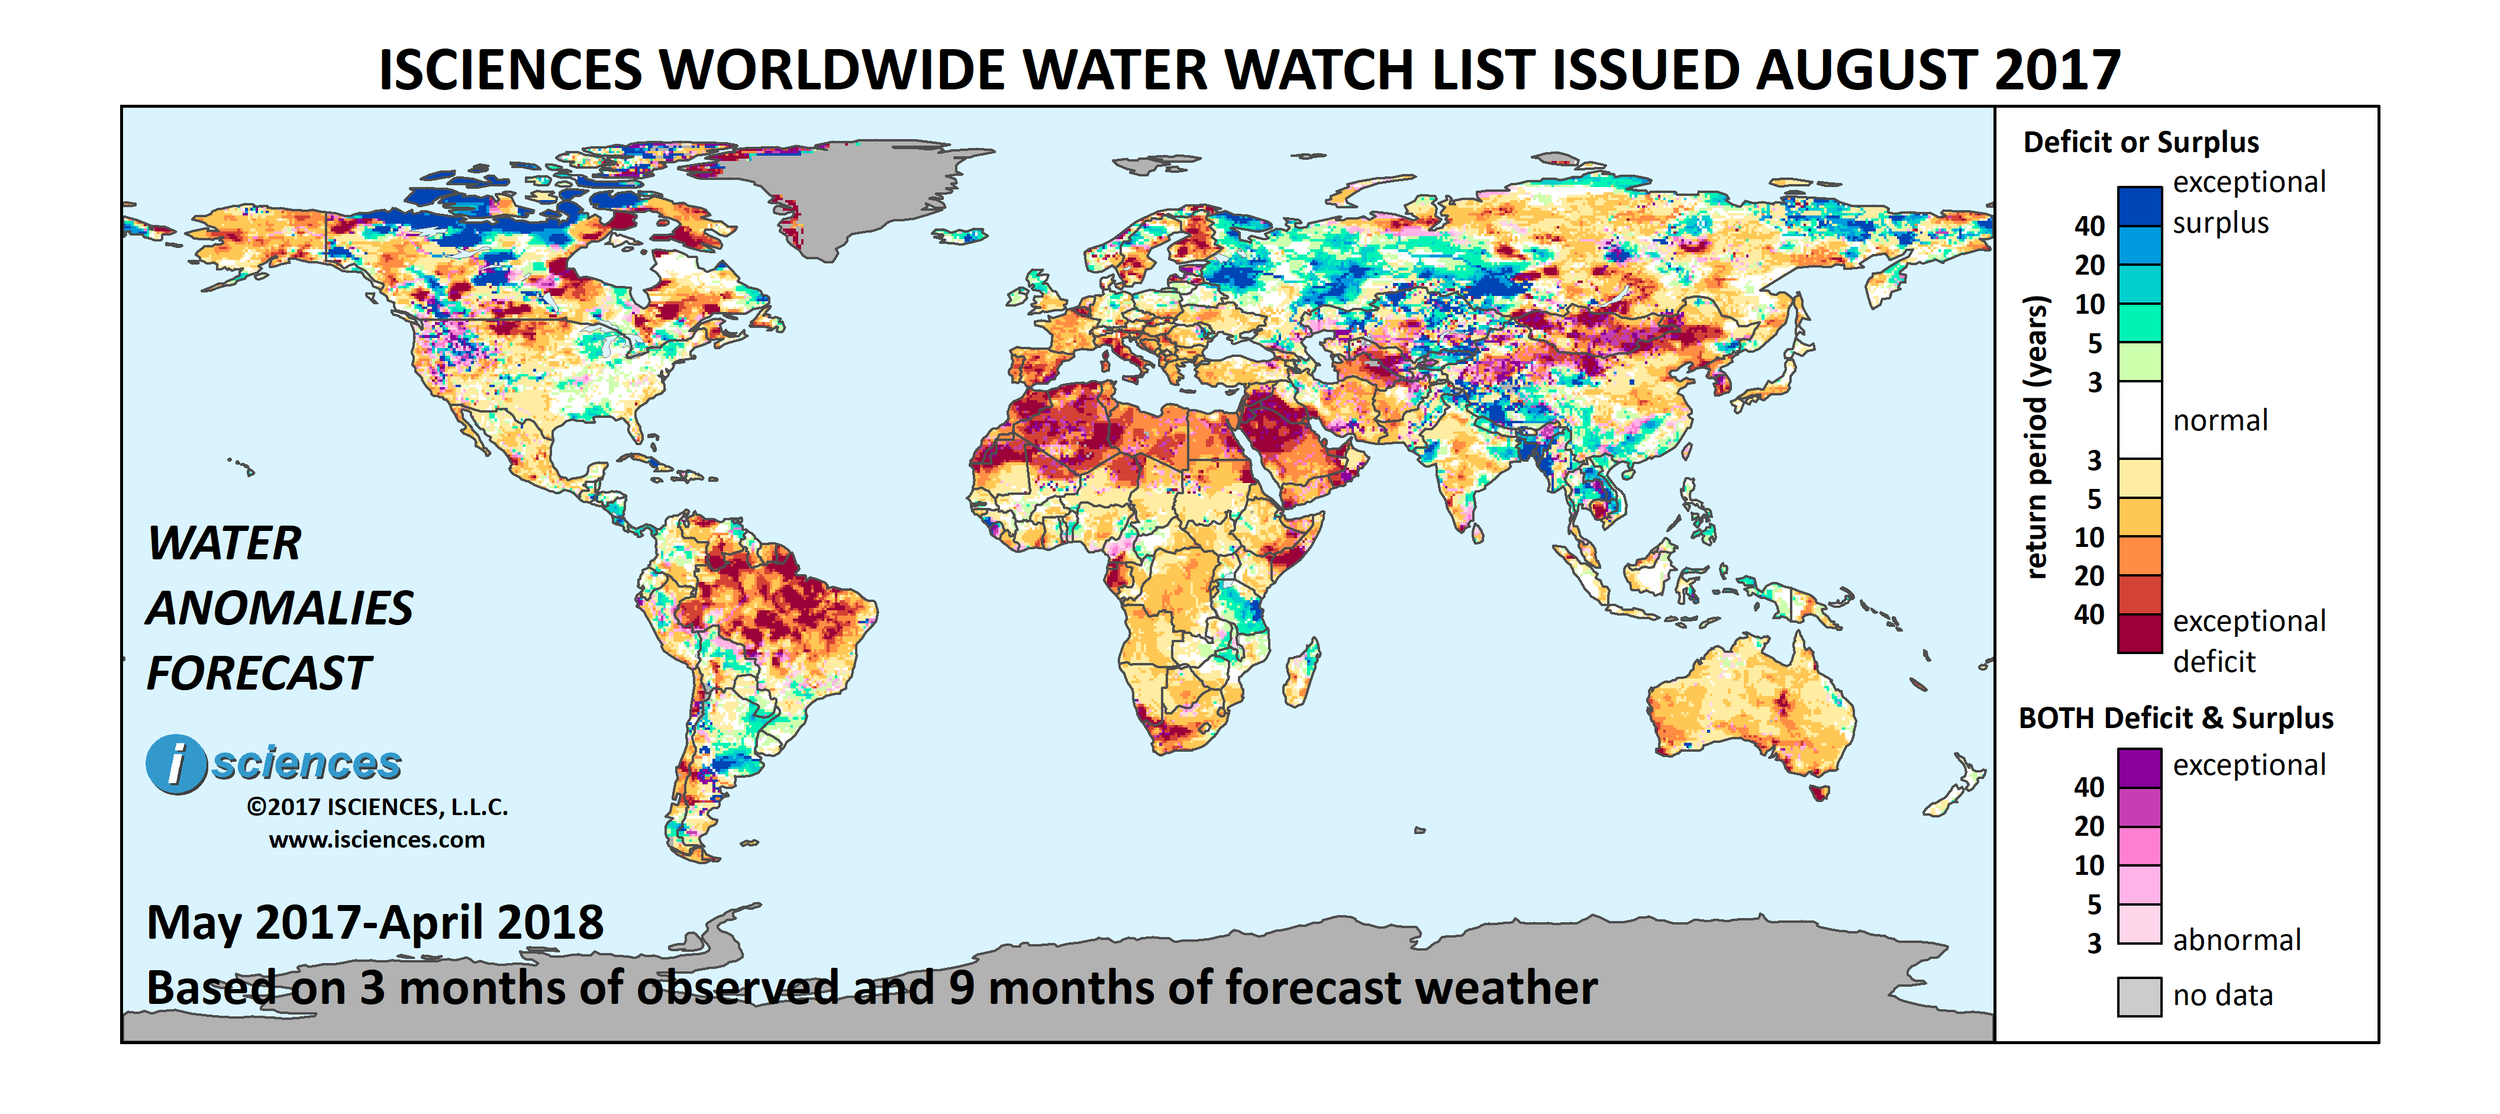 ISciences_Worldwide_Water_Watch_List_August_2017.png